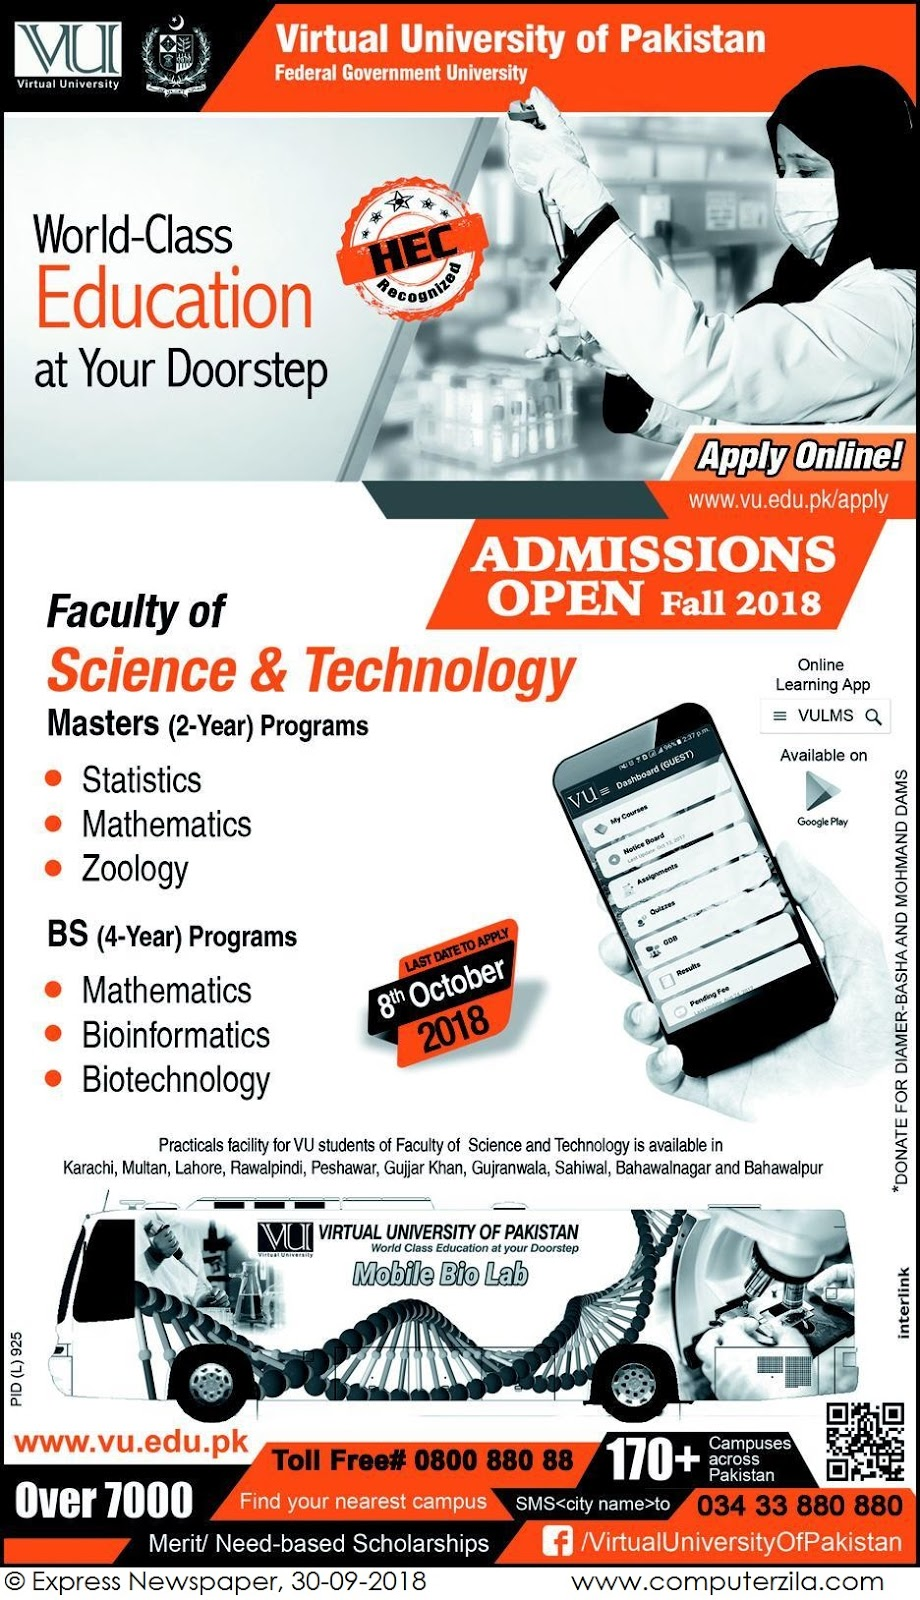 Admissions Open For Fall 2018 At VU Lahore Campus